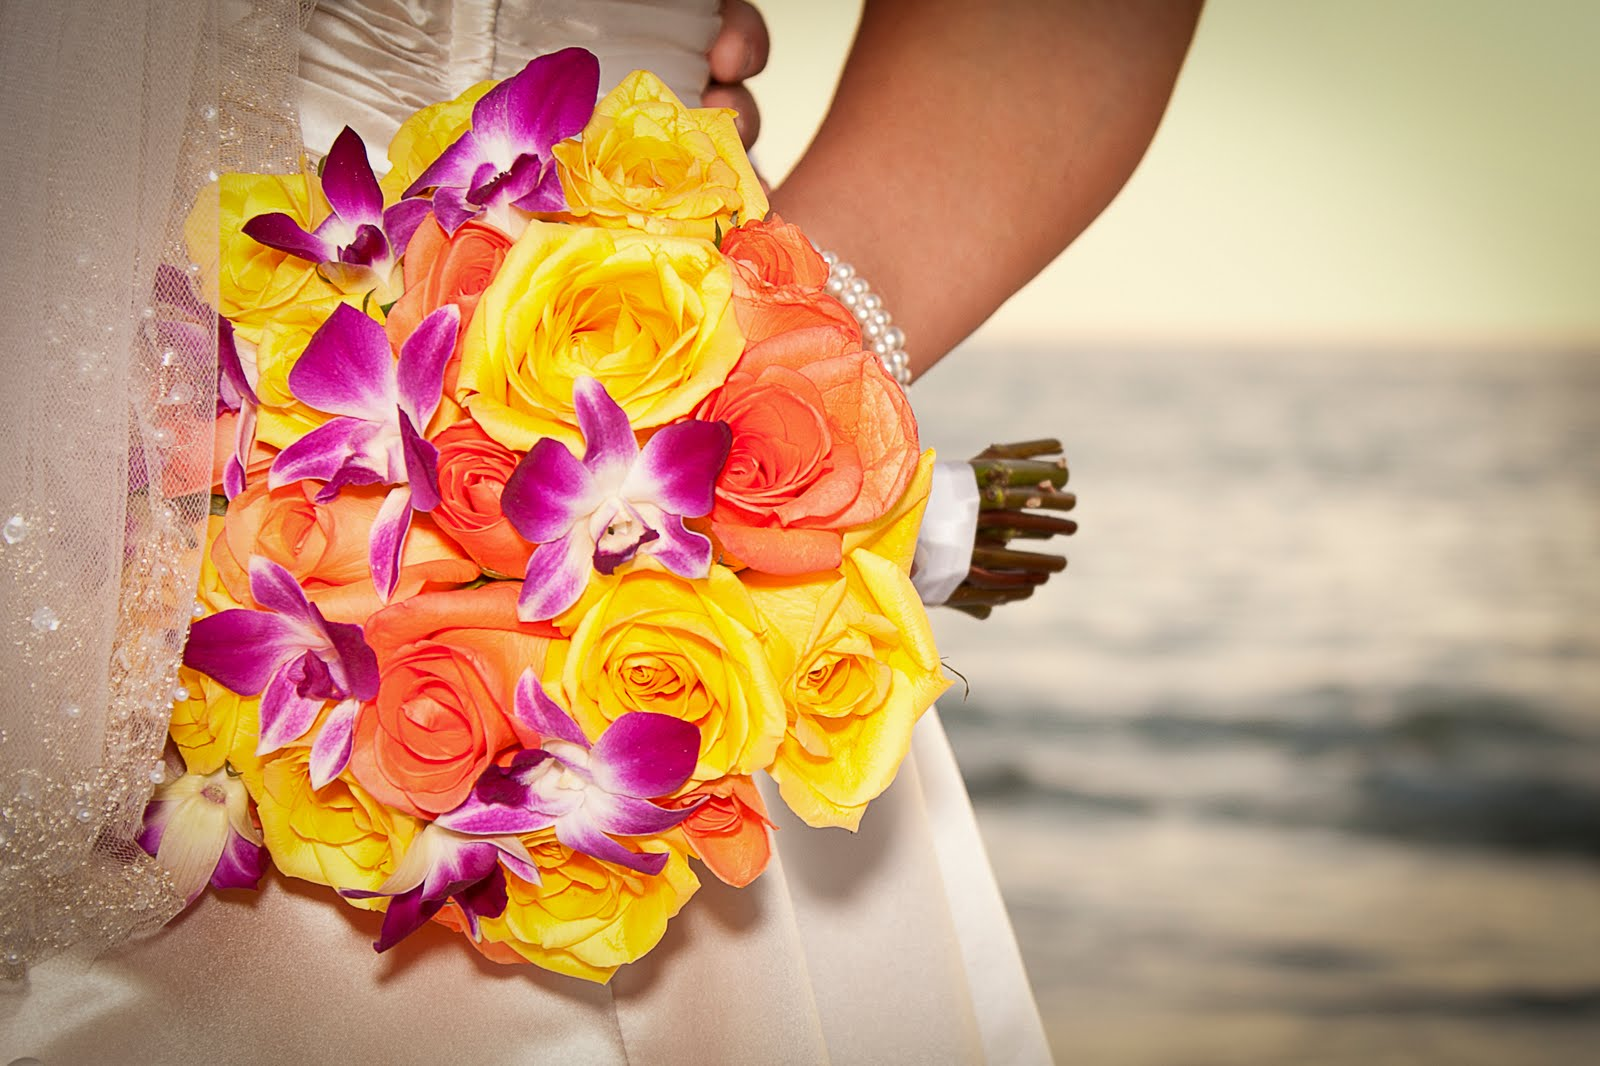 Florida beach wedding flowers best florida beach wedding bouquet florida beach wedding flowers mightylinksfo